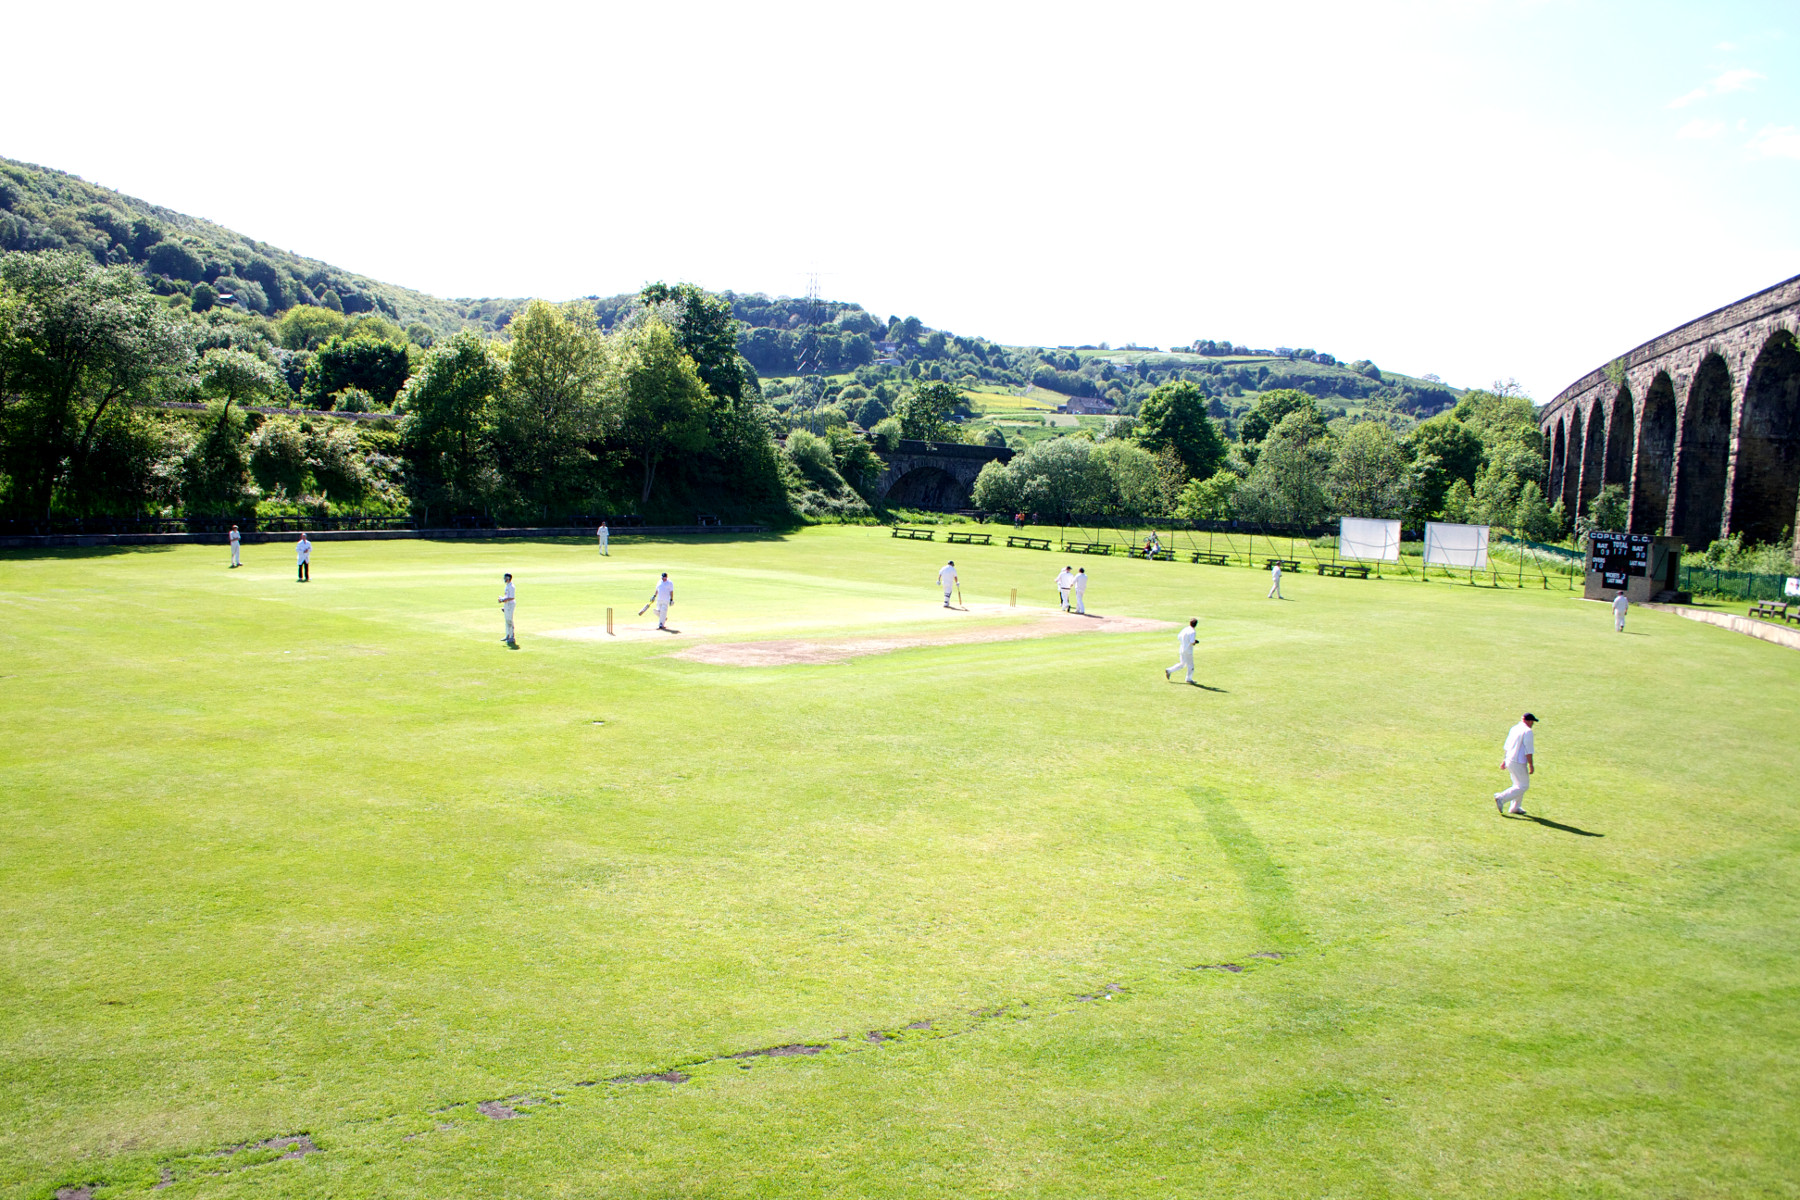 CRICKET-GROUND-HEADER